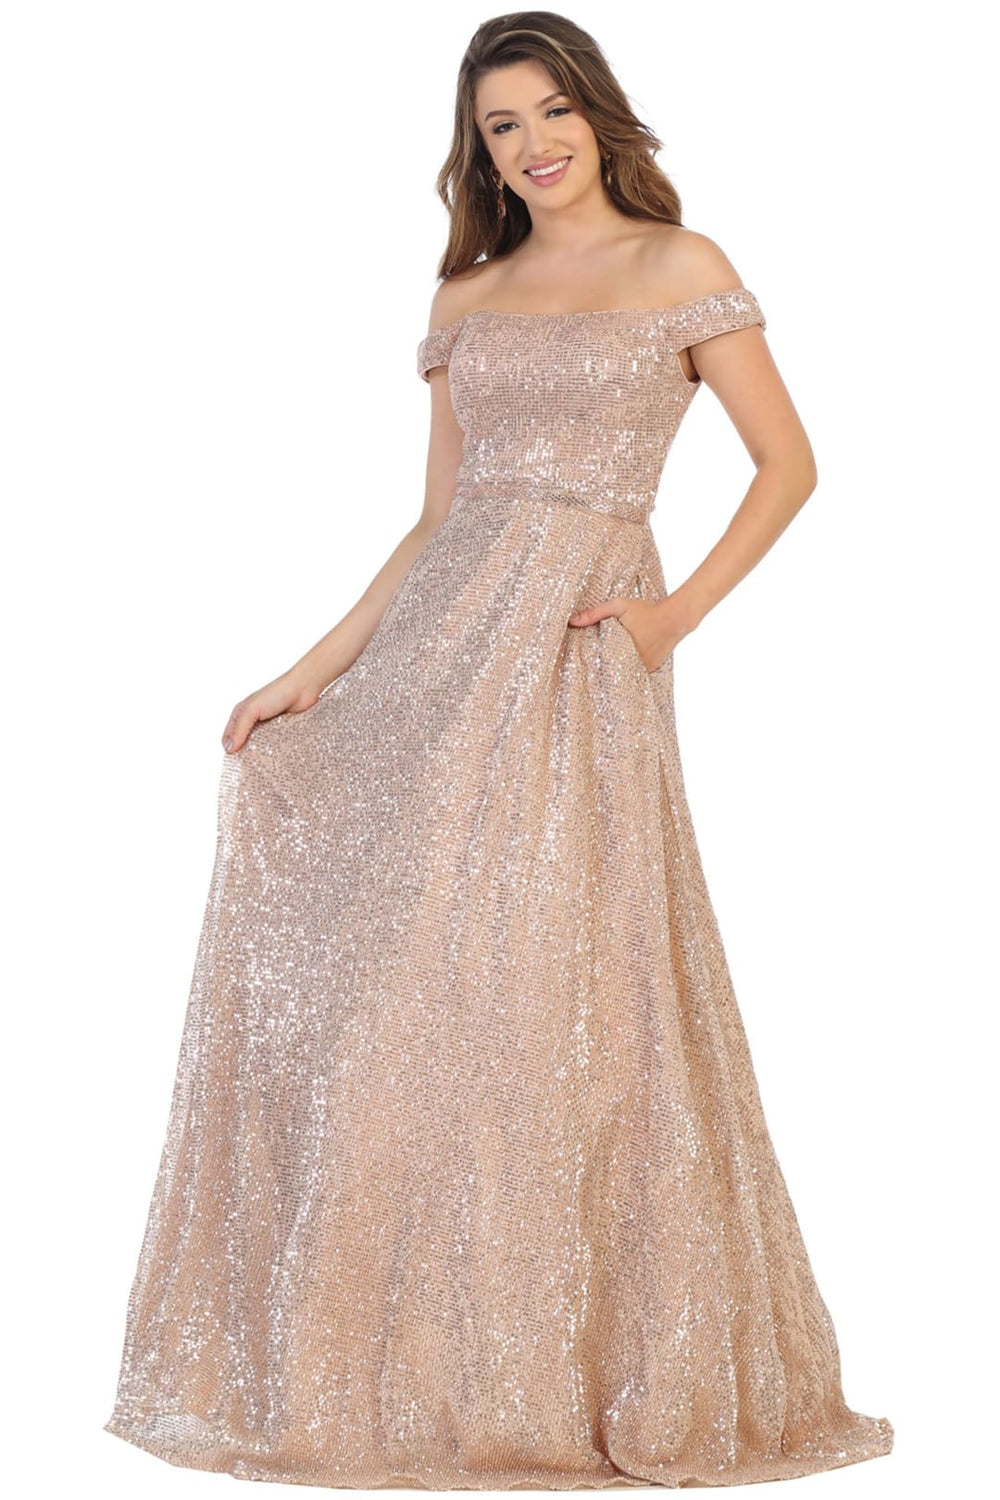 evening formal dresses,prom dress gowns,dress  formal online shopping usa,Beige Formal Gowns, Formal Gowns in Los Angeles,Formal Gowns in Los Angeles, Women's Formal Dresses,Women Formal Dresses and Gowns,Shop for Formal Dress,Evening Apparel for Women ,Formal Gowns for Seniors,Women Evening Dress,Women in Evening Gowns,Dressy Elegant Dresses,Evening Gowns Lady,formal gowns dresses,Formal Dresses Store,Gold Evening Gowns Dresses,Ball Gowns Prom Dresses,Where to Buy Formal Dresses,Evening Ball Gowns,Prom Evening Gowns,Evening Formal Dresses for Women,Unique Formal Gowns,Womens Formal Dresses,Formal Dresses USA,Unique Lady Prom Dresses,American Formal Dresses,formal dress shops,formal dresses for women,